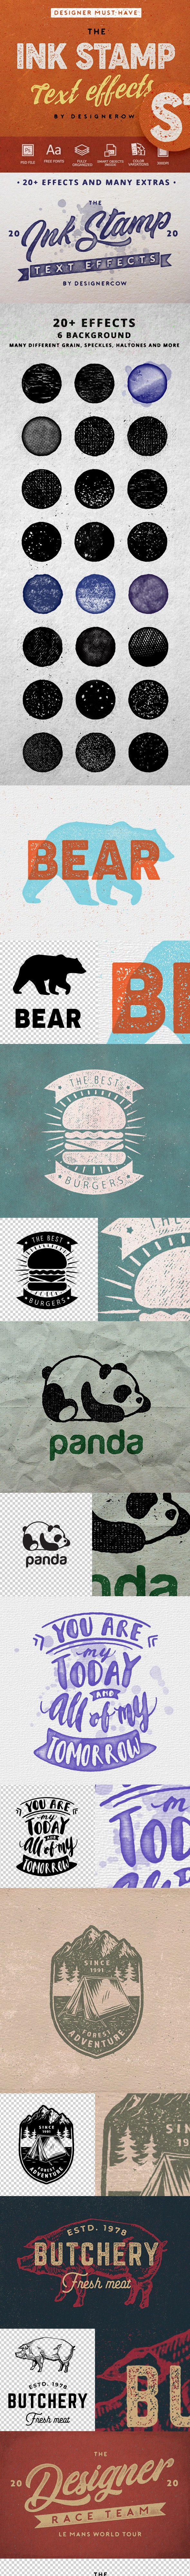 Photoshop Ink Stamp effect - Photoshop Add-ons